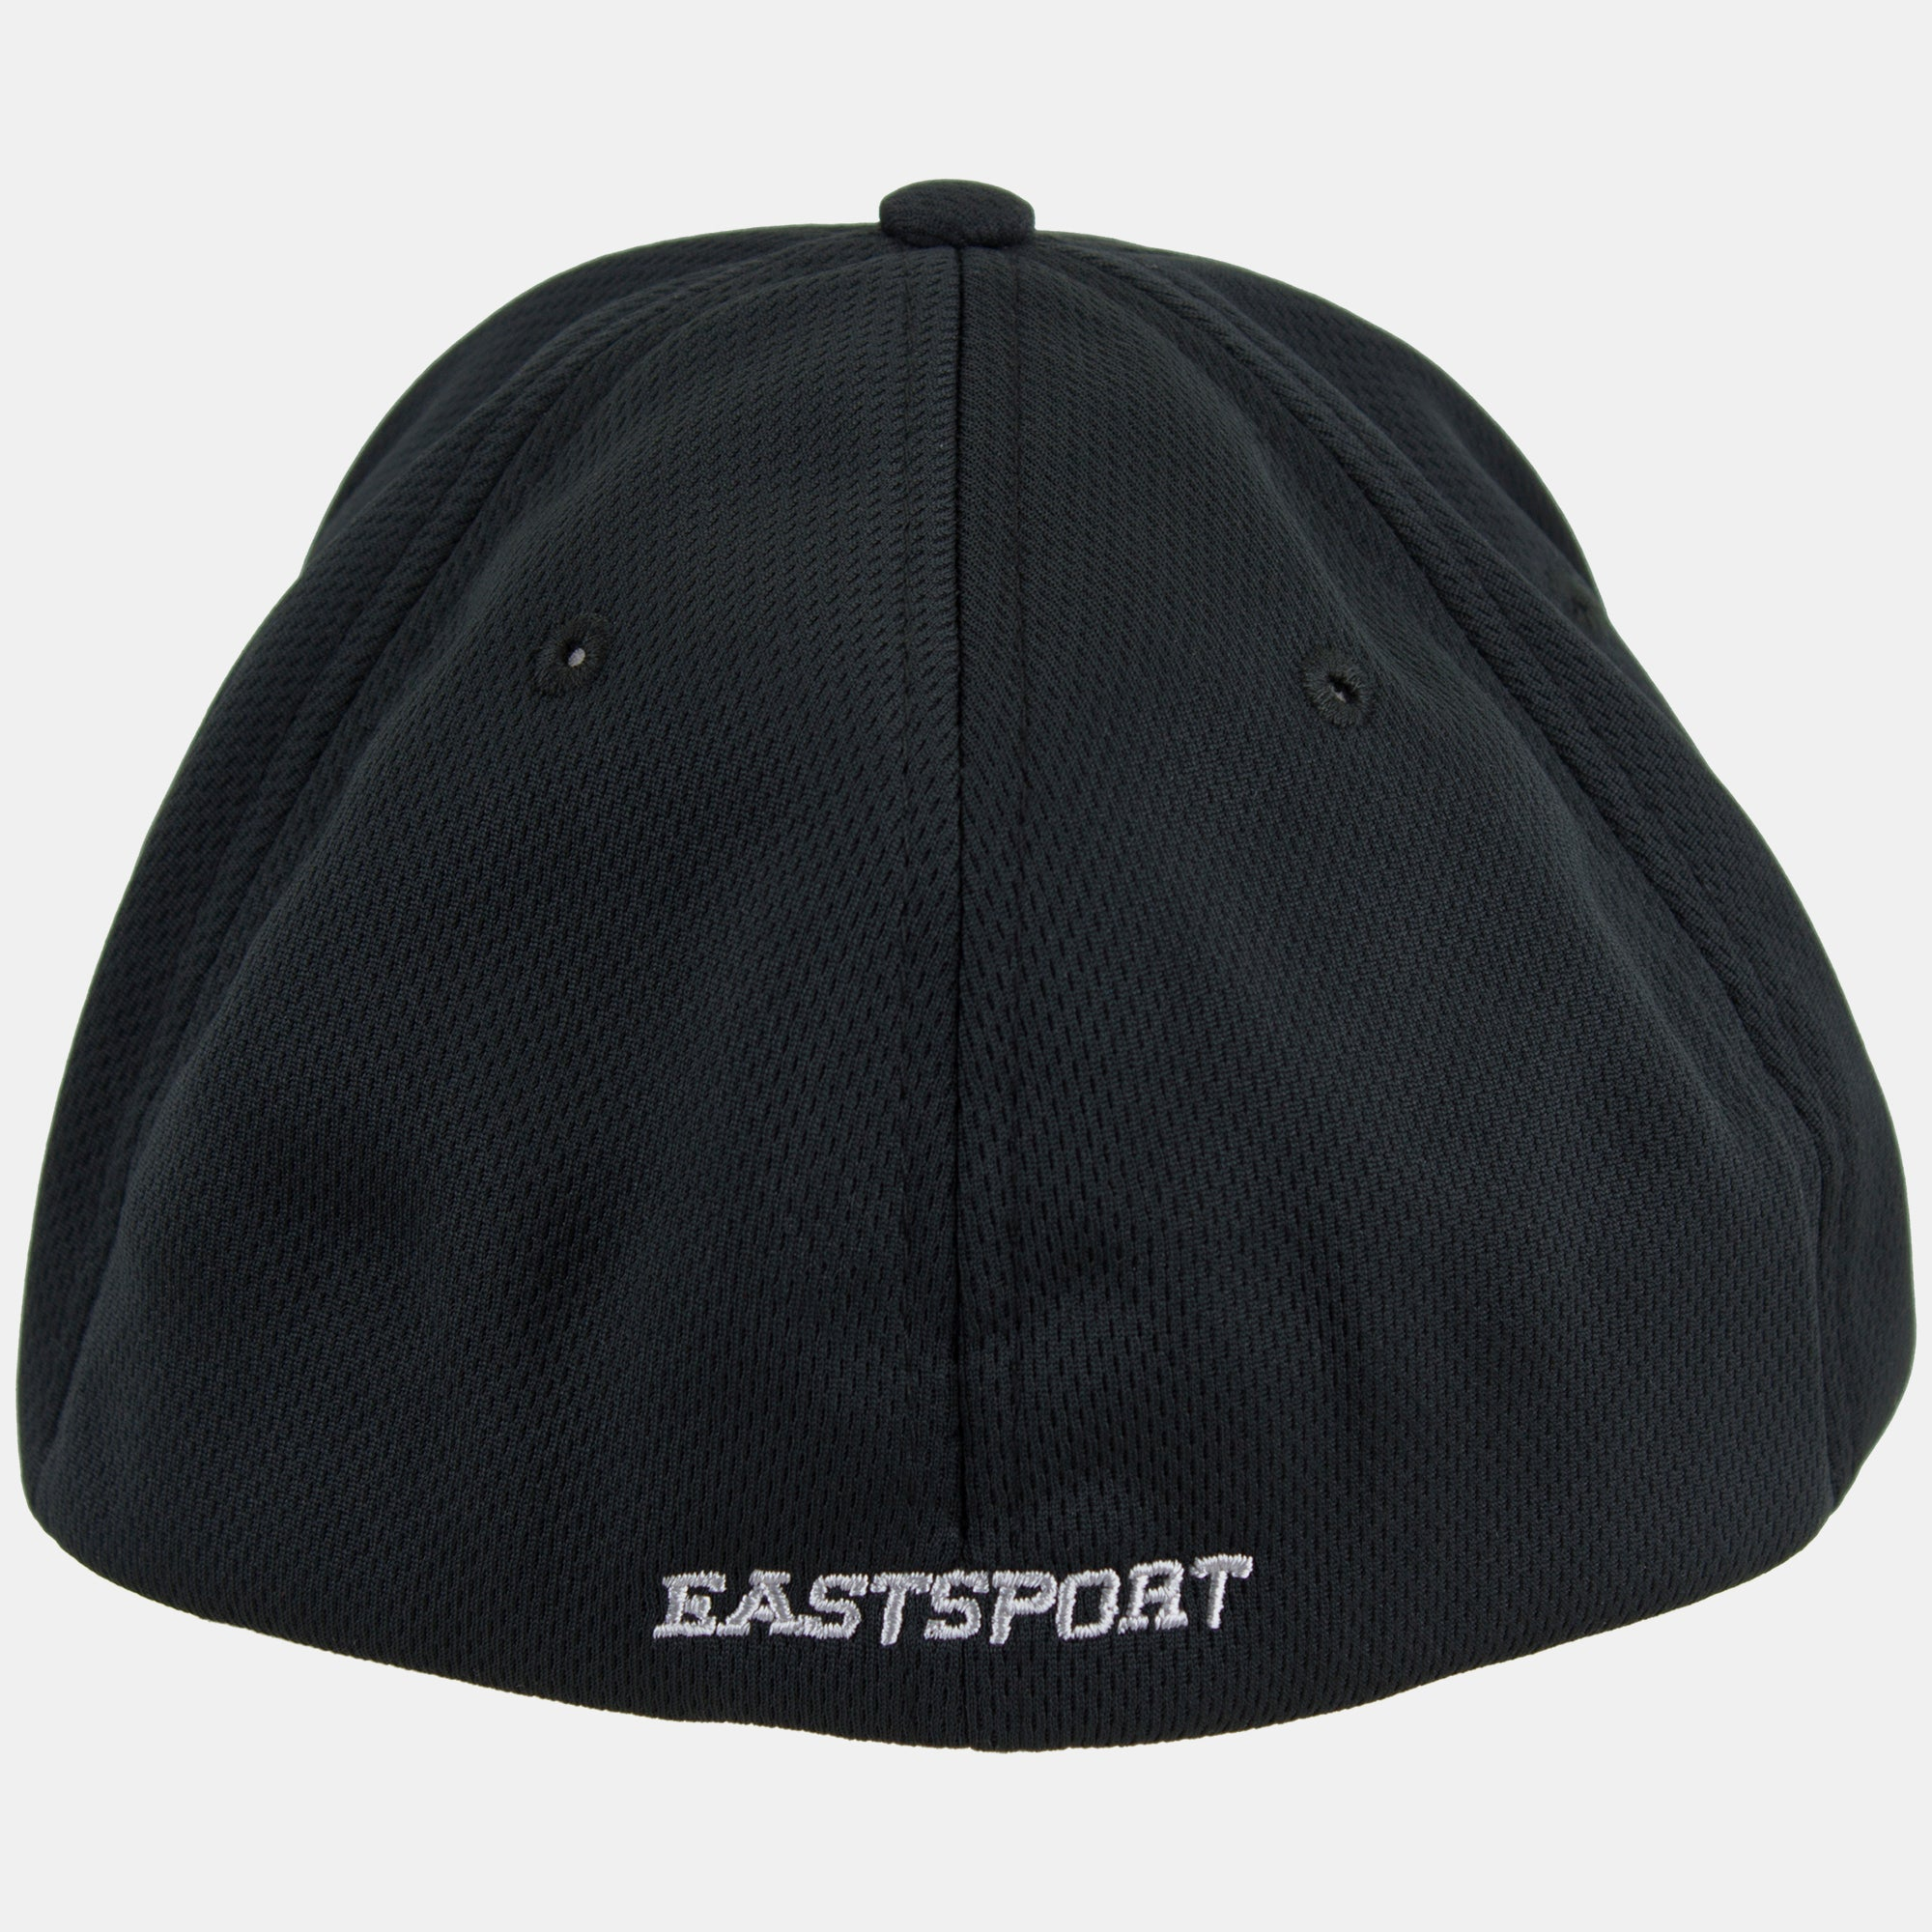 Eastsport Athletic Comfort Flex Hat